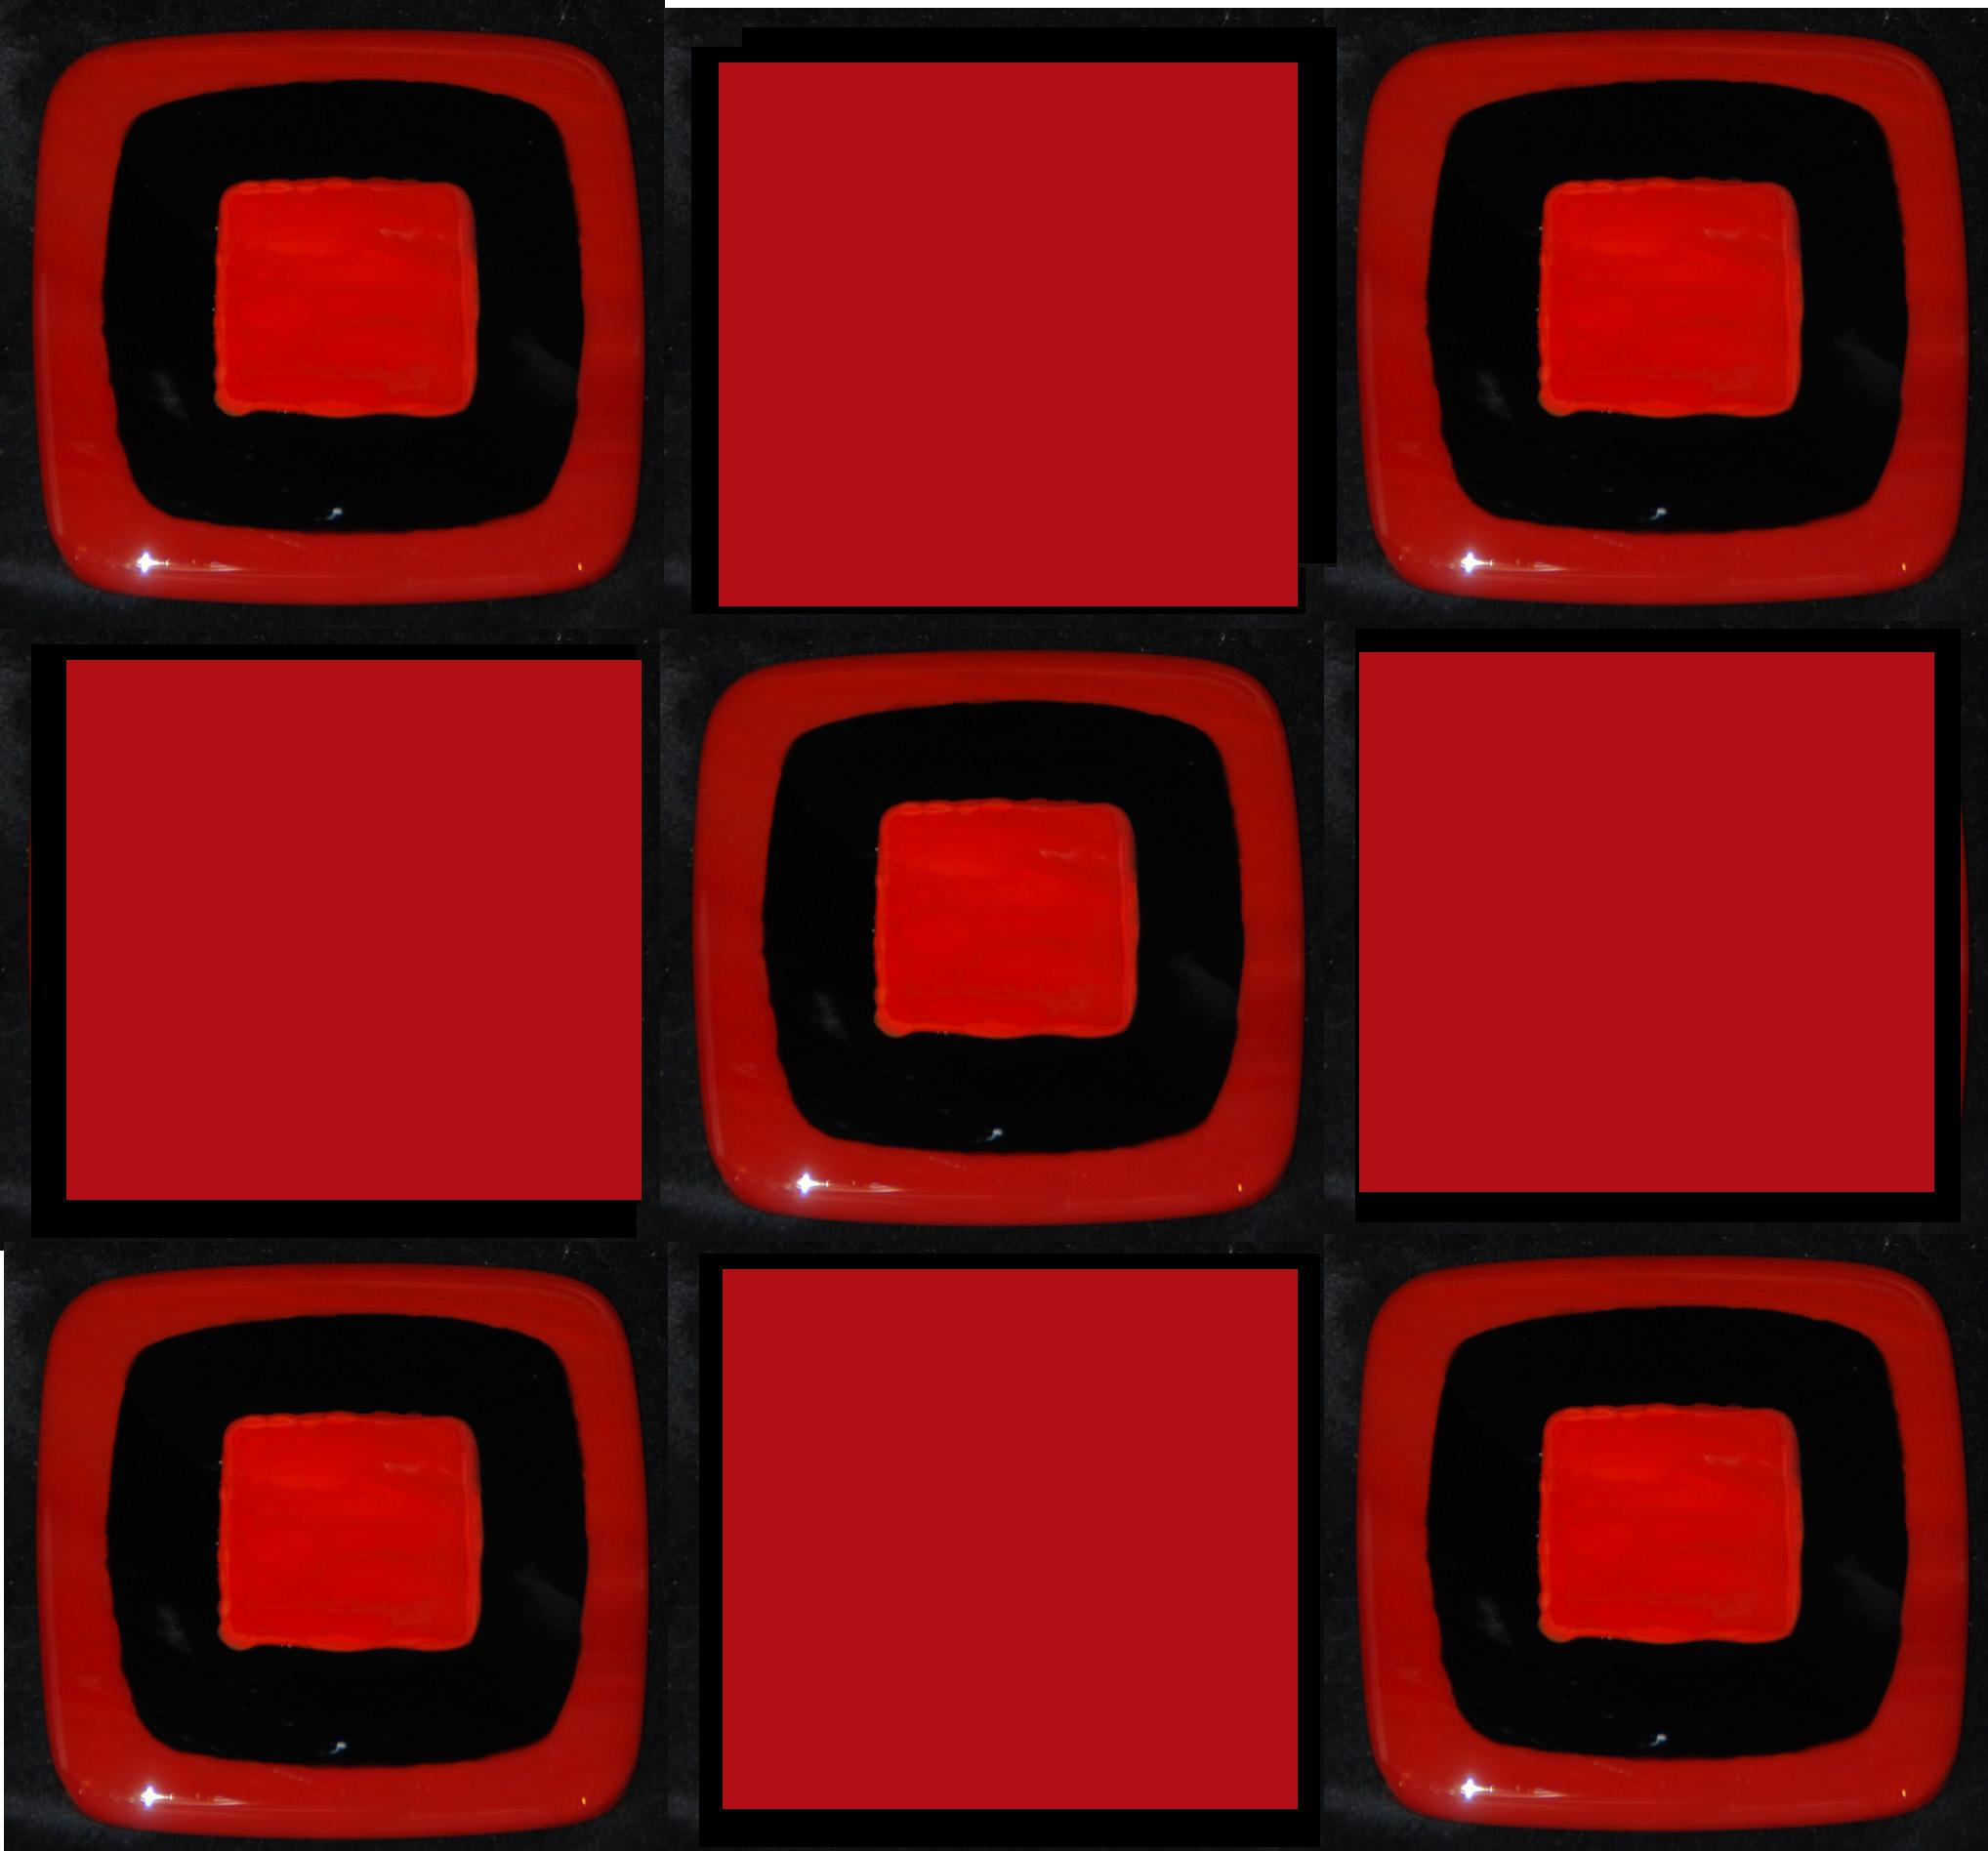 red on black tiles with dark red.jpg